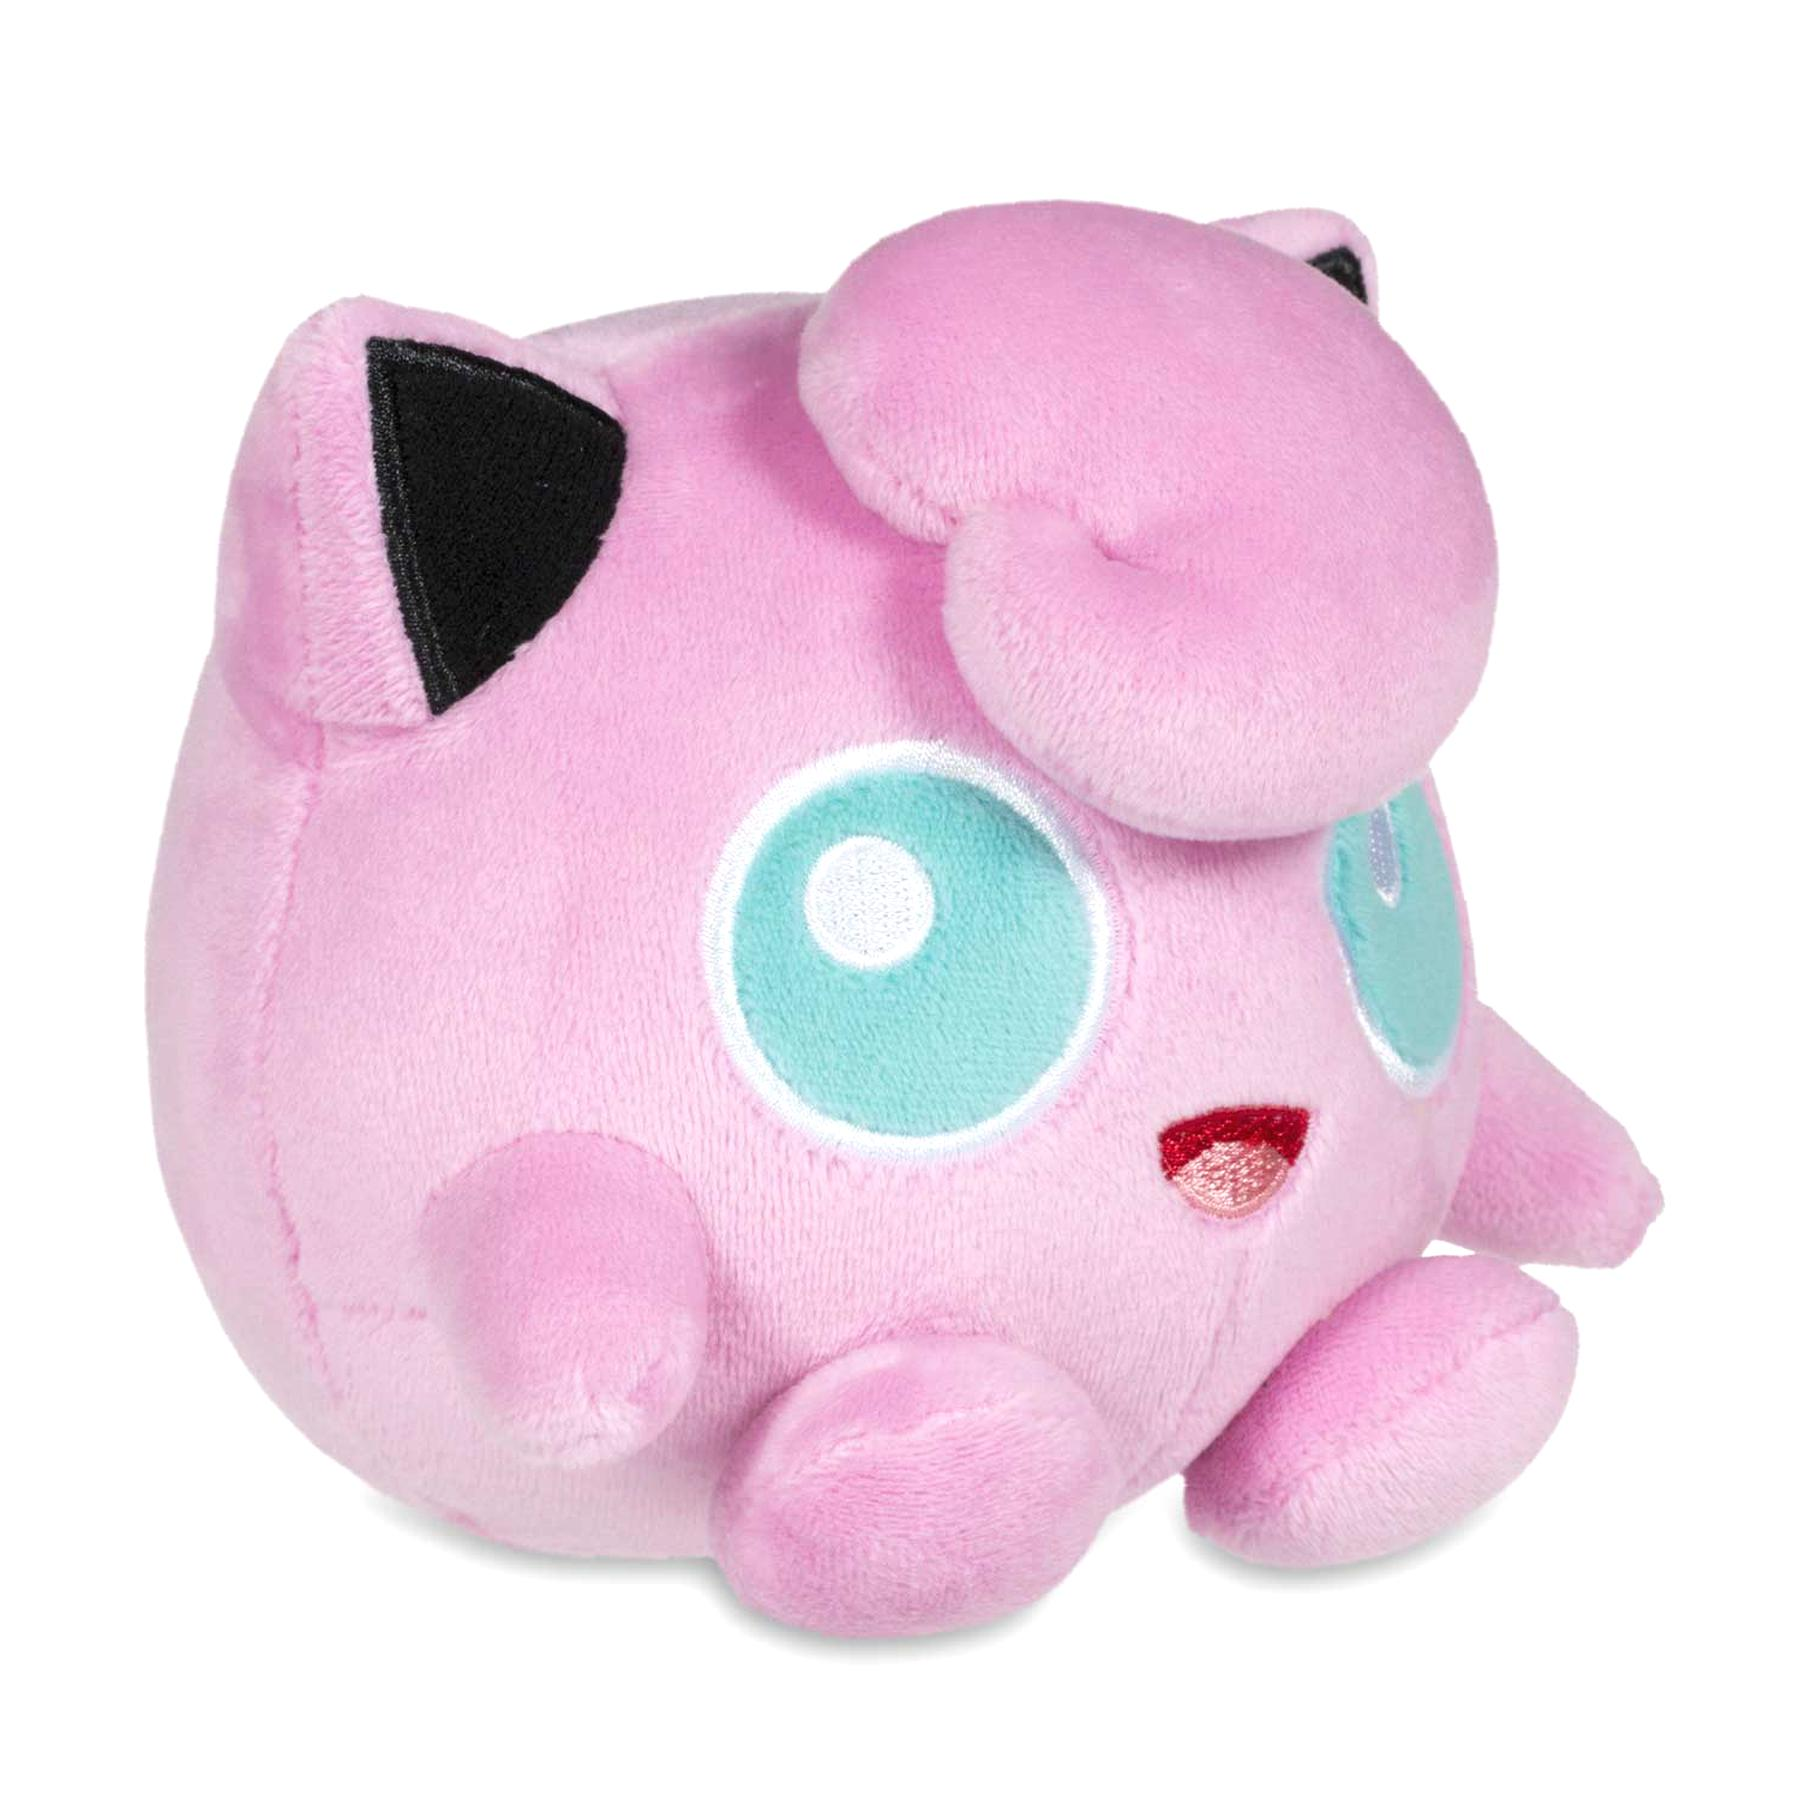 "JIGGLYPUFF 6/"" Plush Purin Pokemon New with Tags Official Licensed Toy"